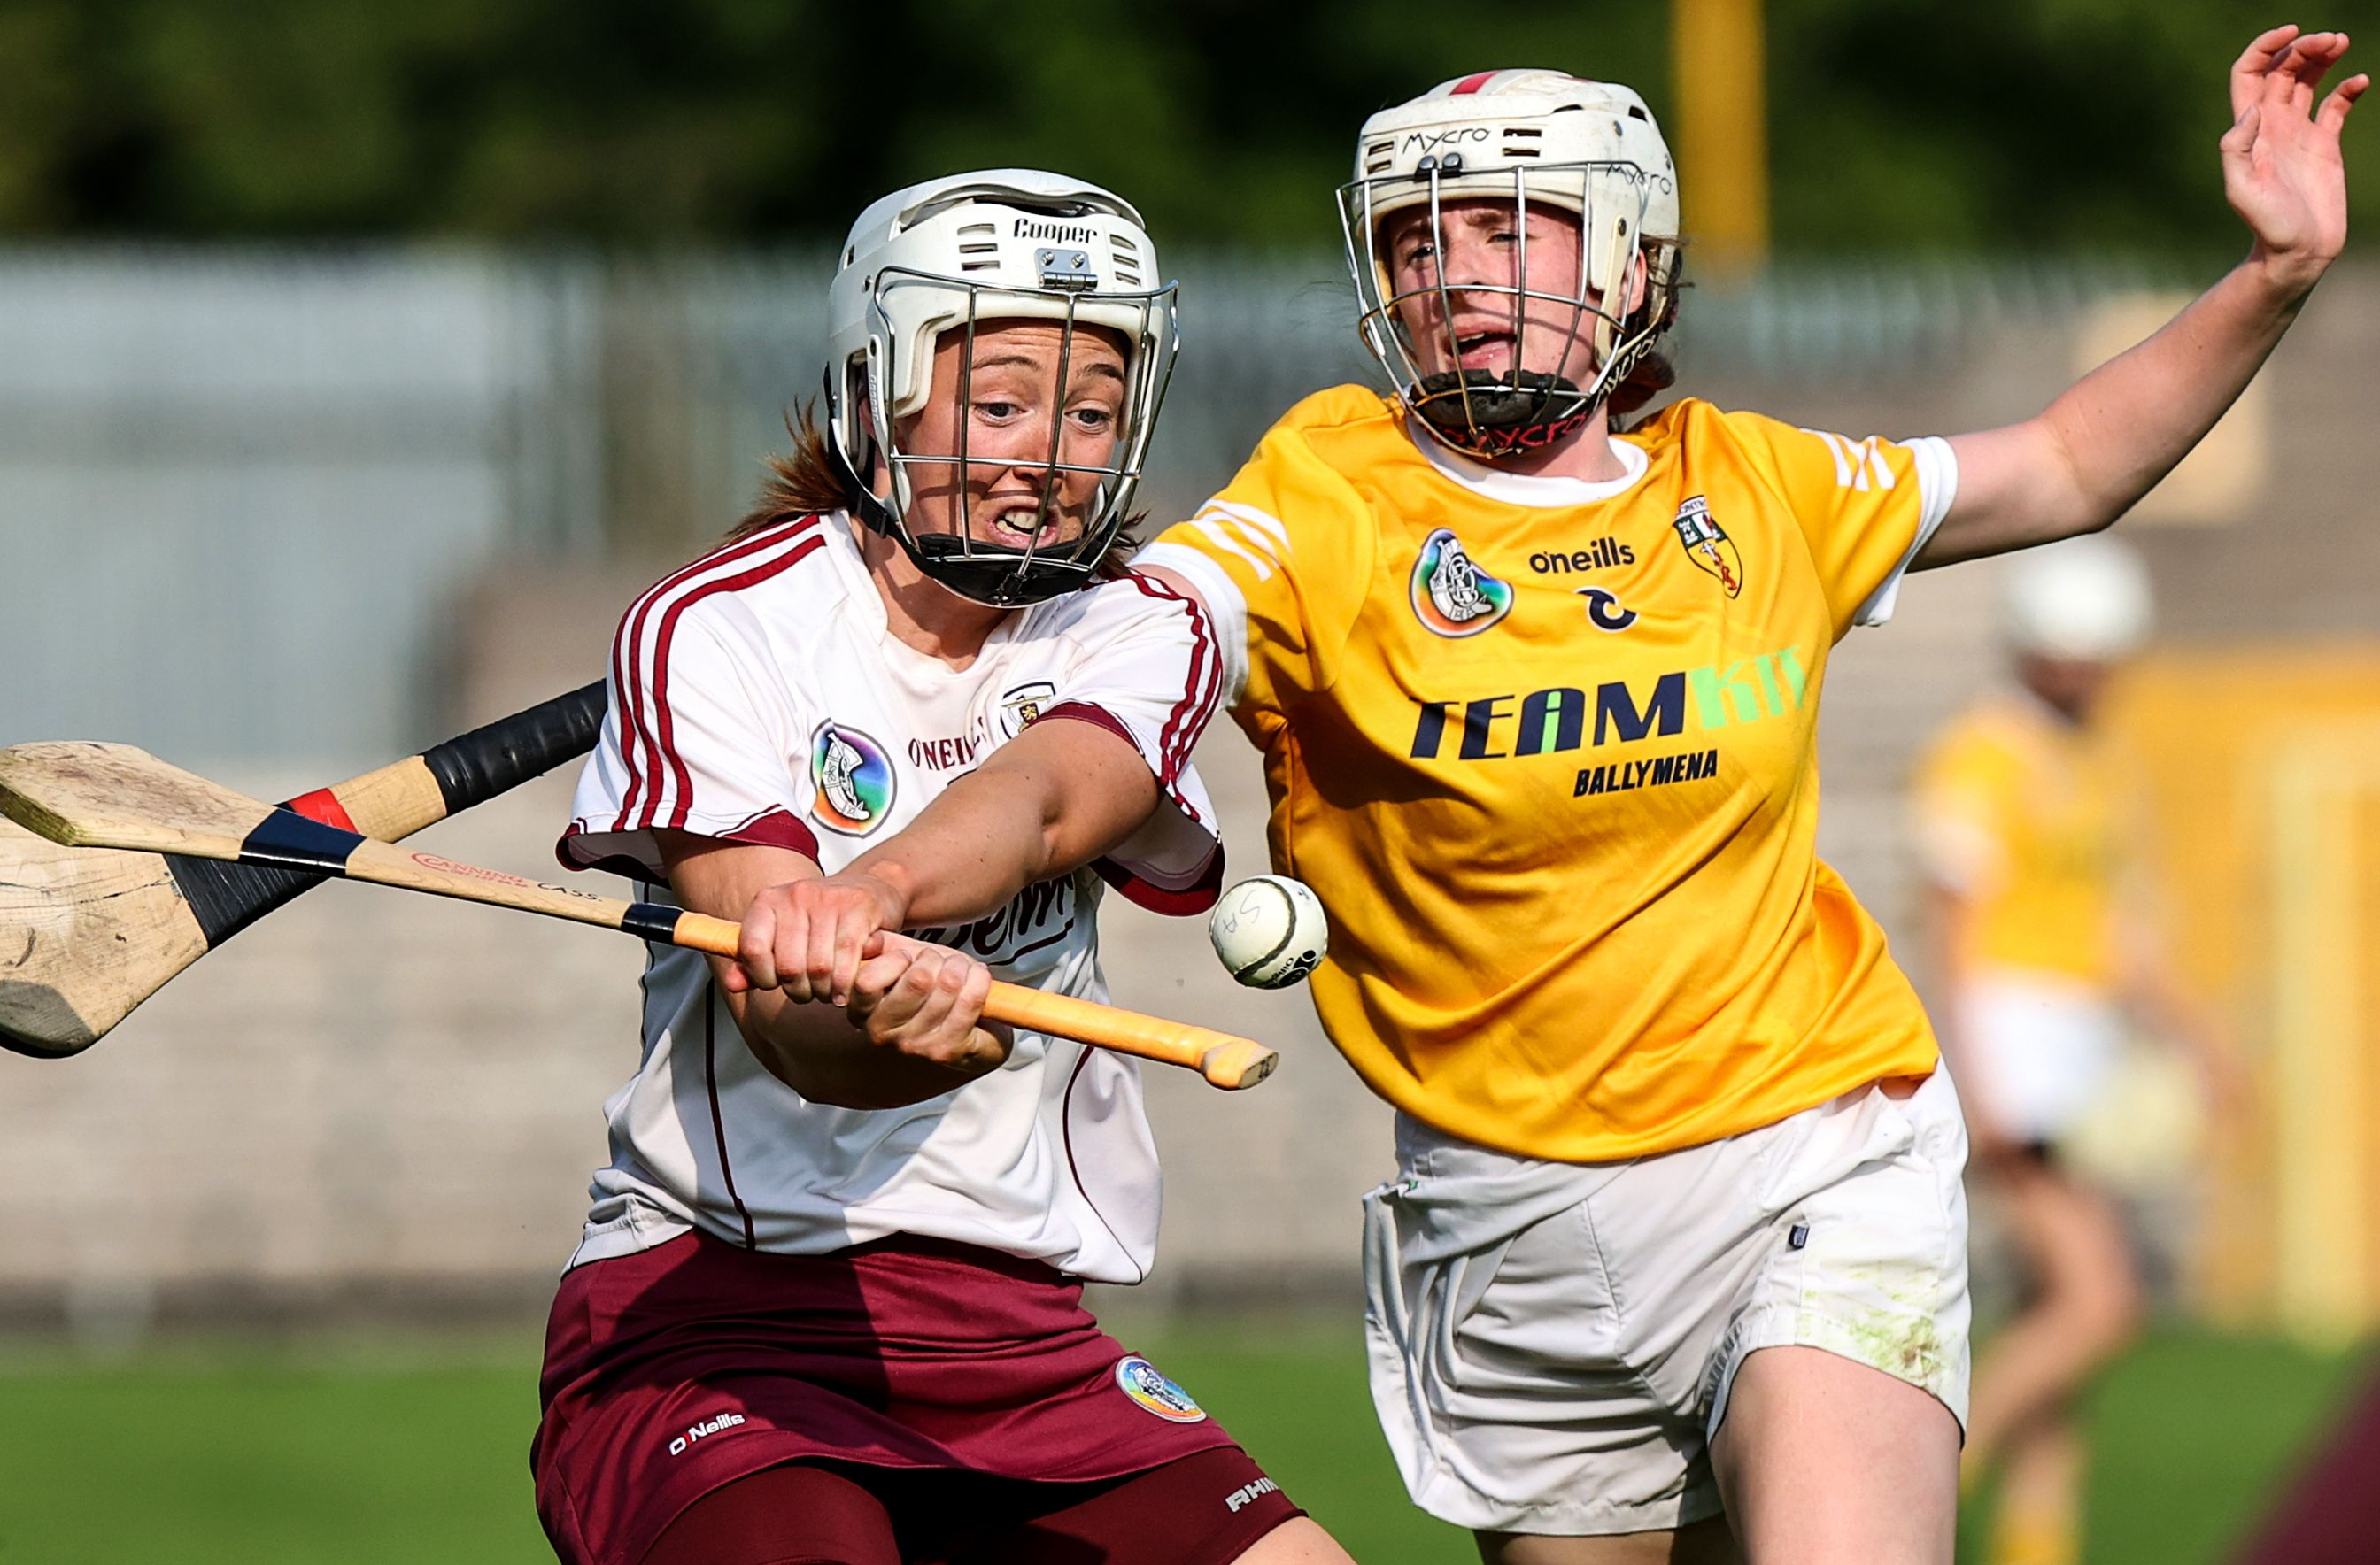 Antrim captain Lucia McNaughton believes that defeat to Down in the 2020 final will help spur Antrim on against Kilkenny on Sunday